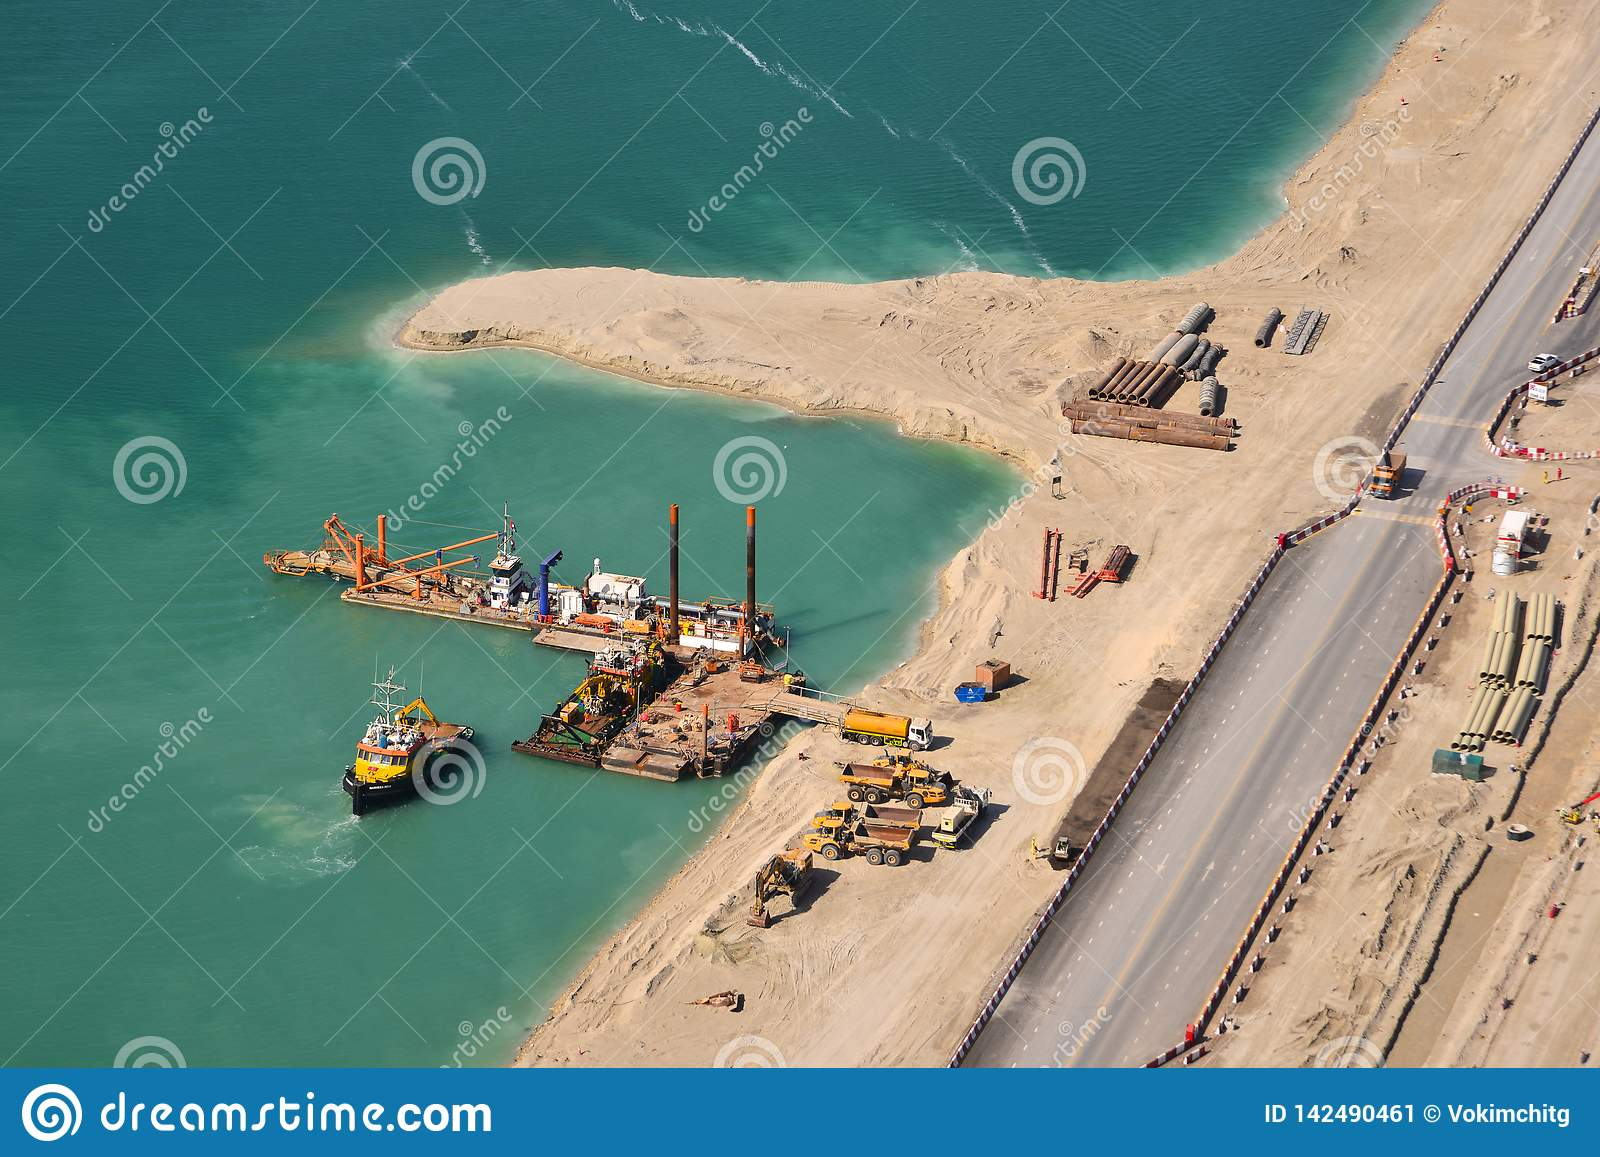 Aerial view of construction on artificial island